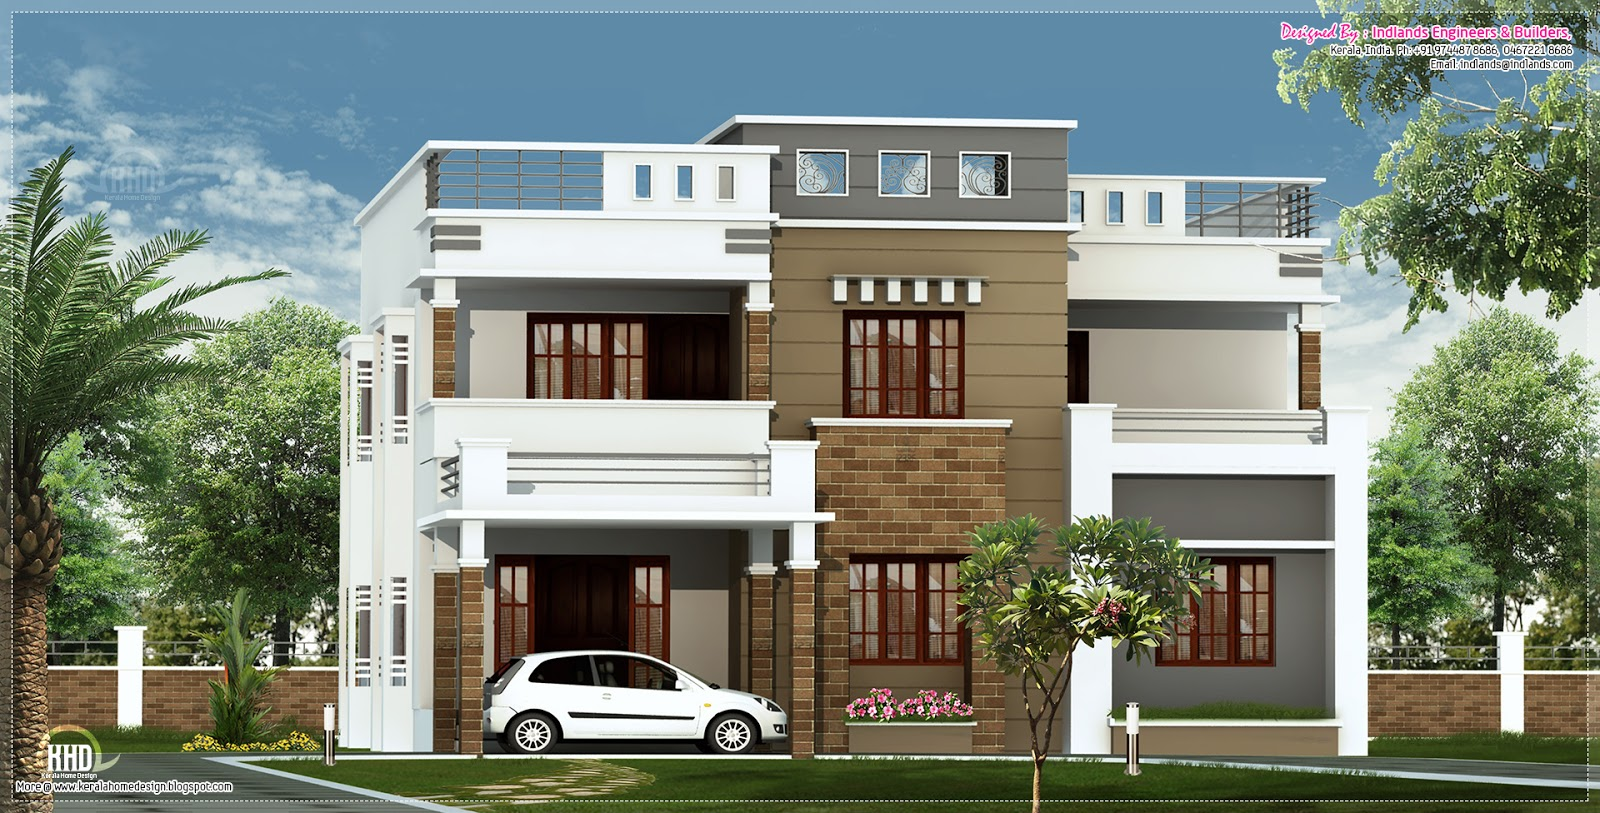 march 2013 - kerala home design and floor plans